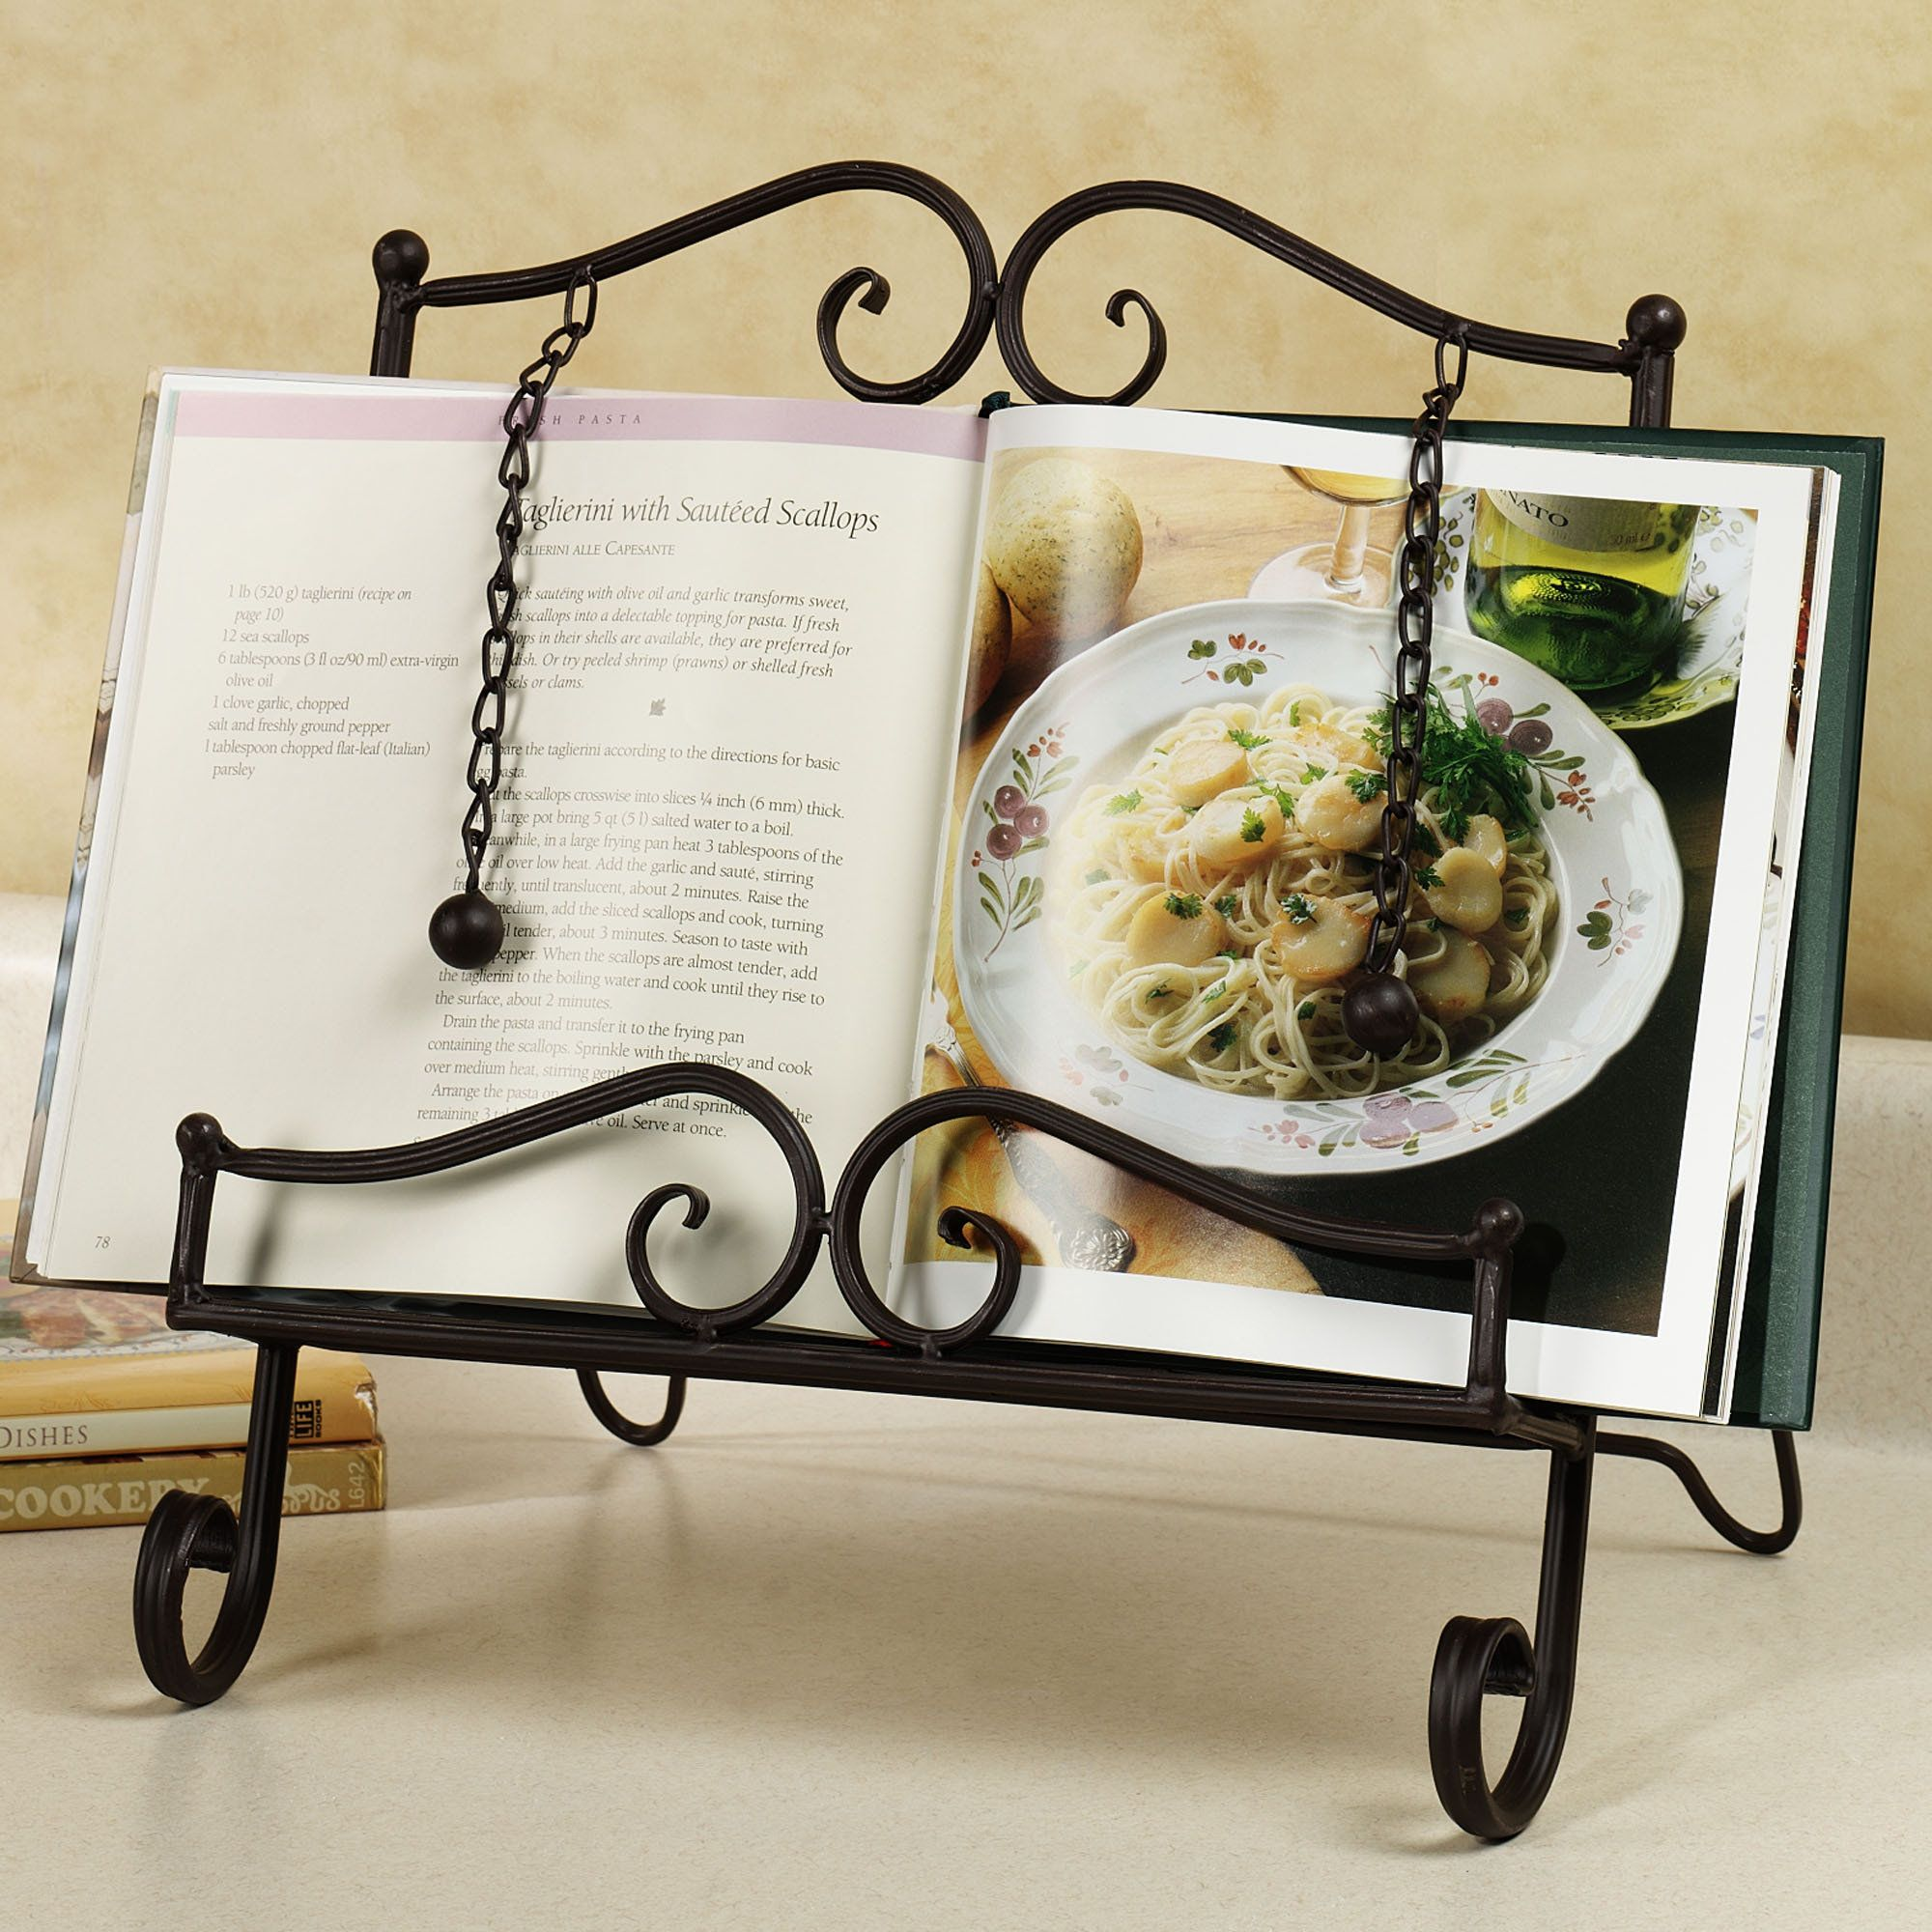 townsend cookbook stand iron wrought iron and blacksmithing